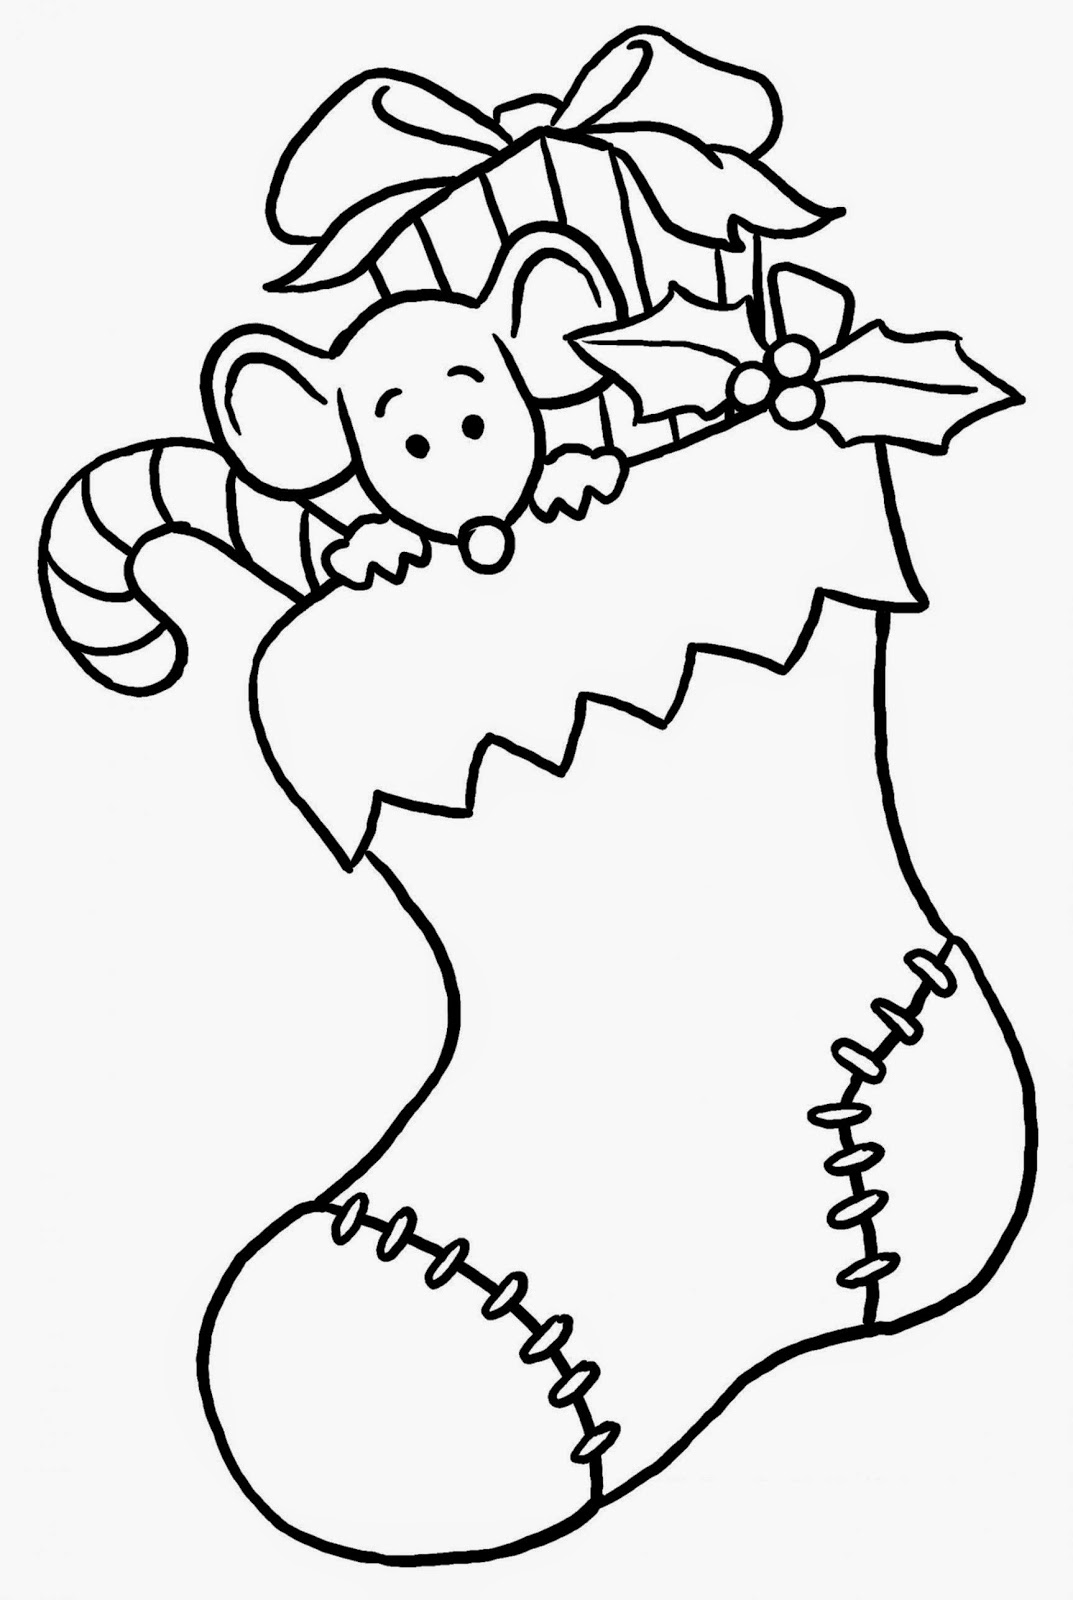 coloring pages for pre schoolers - photo#4